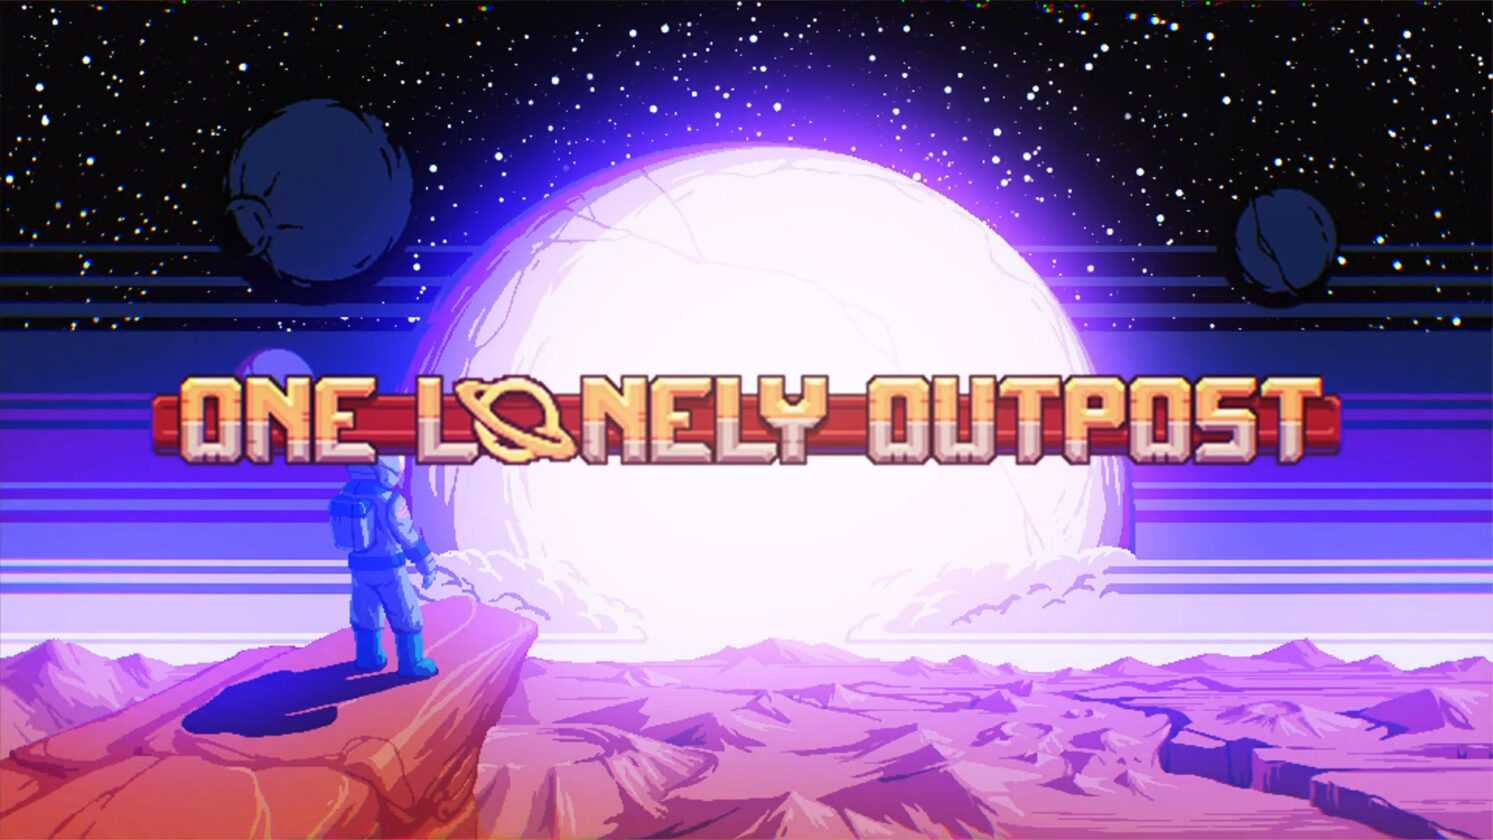 What Is One Lonely Outpost? A Game In The Style Of Stardew Valley, But On Mars